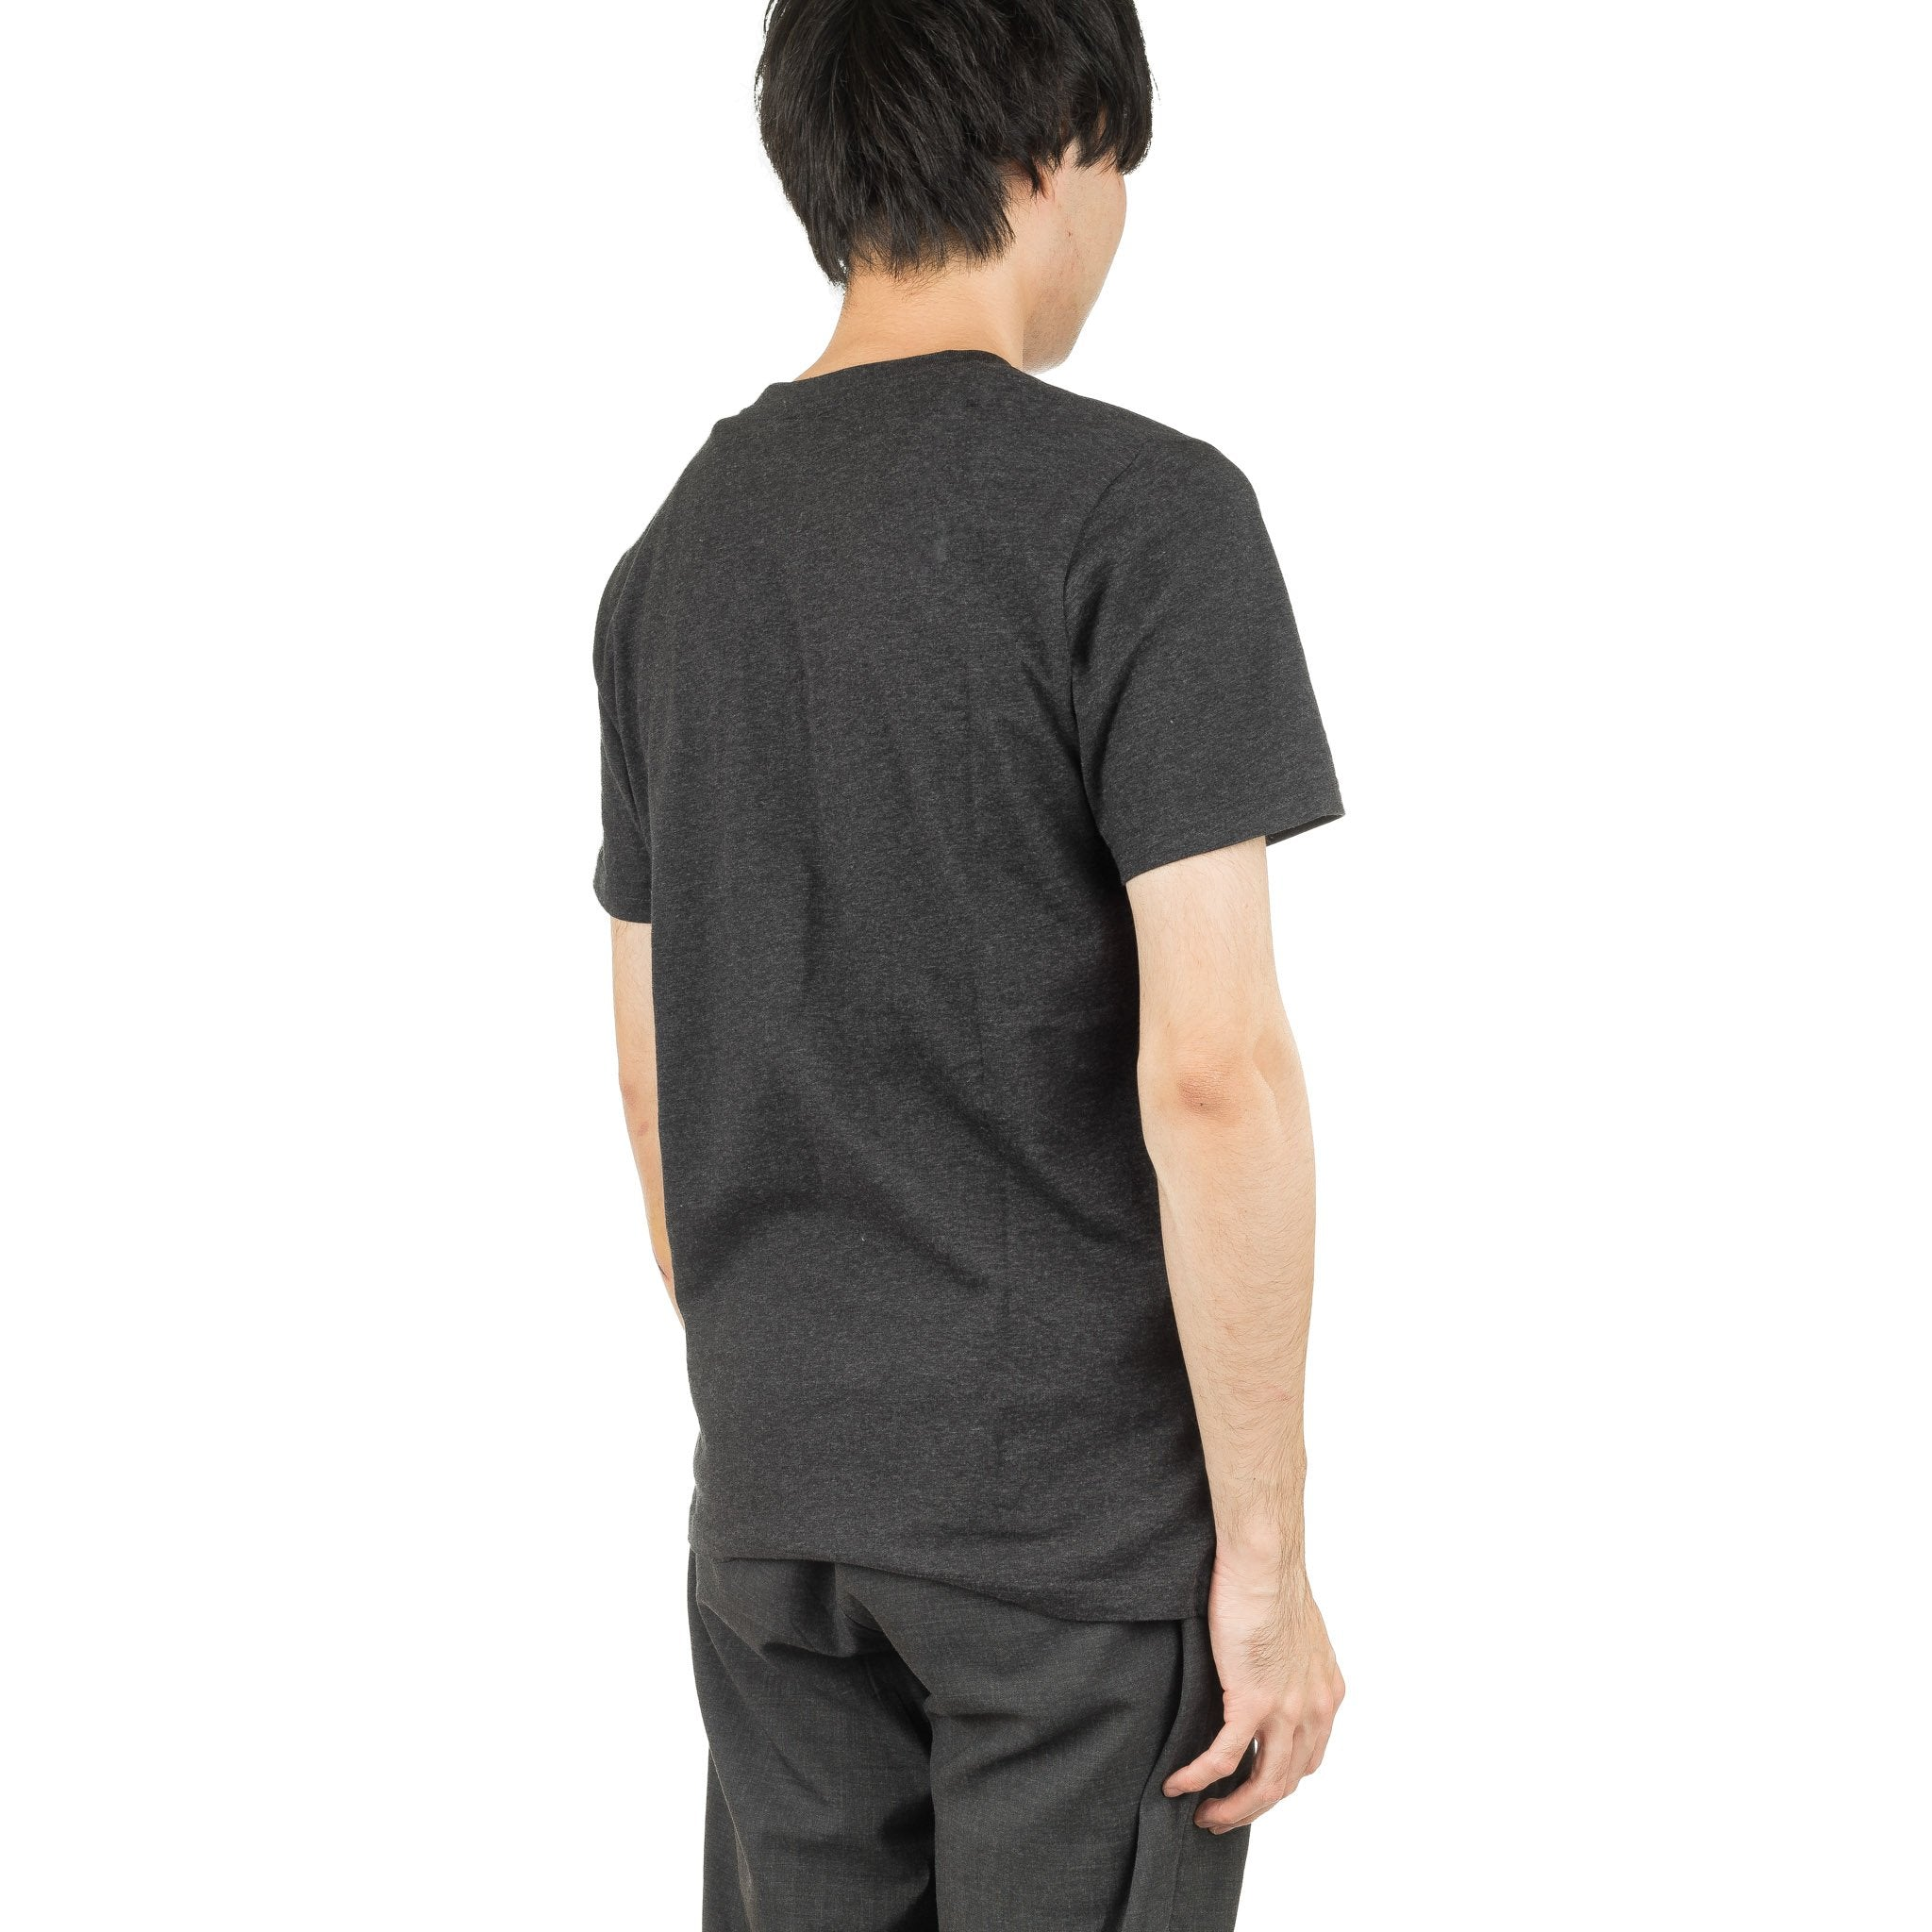 S/S Contrast Pocket T-Shirt Black Heather